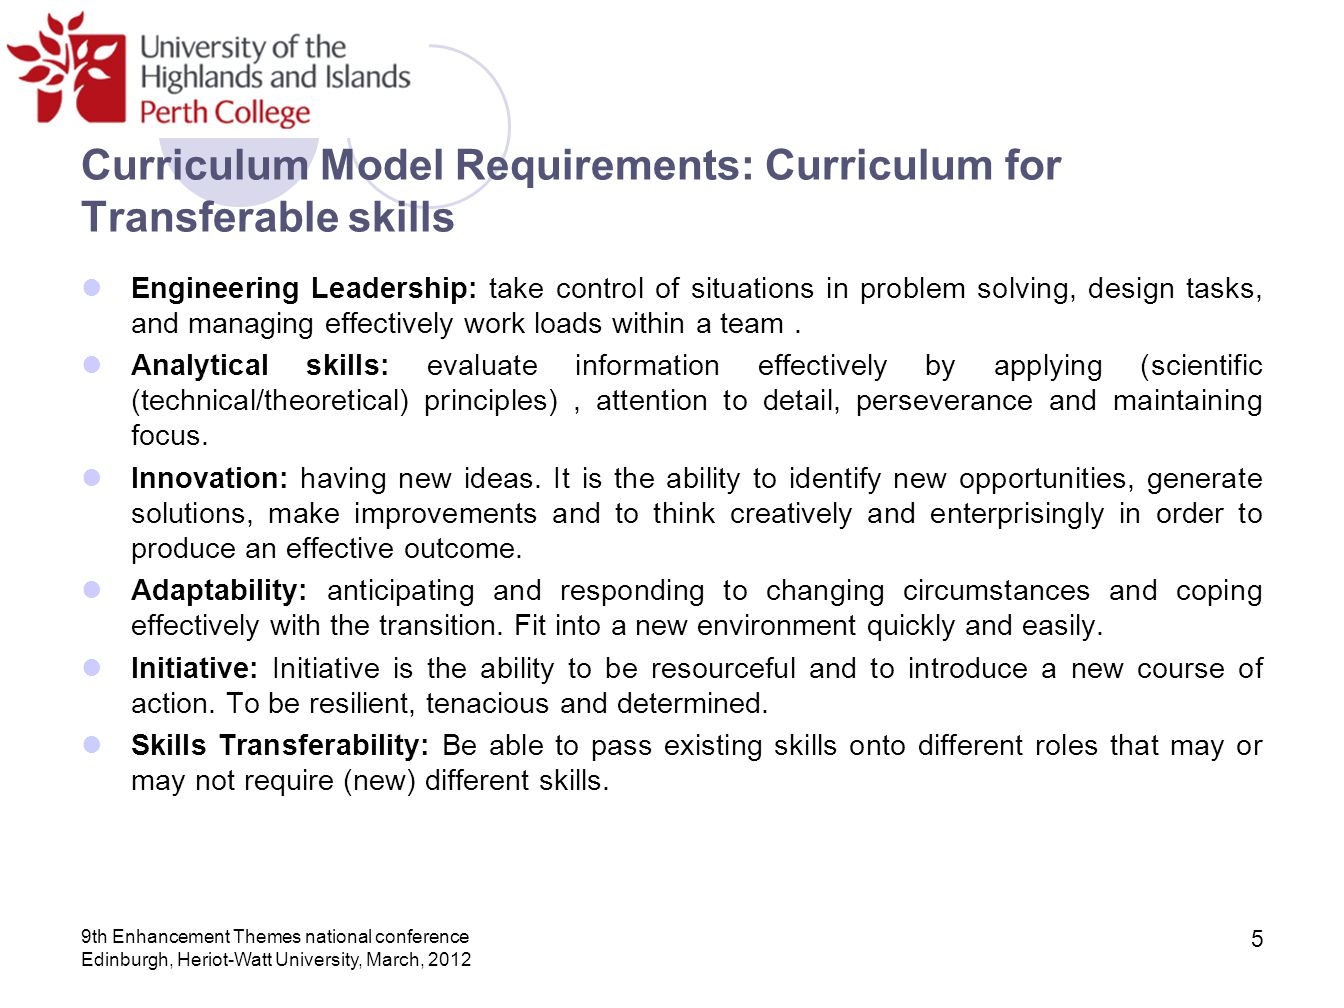 Curriculum Model Requirements: Curriculum for Transferable skills